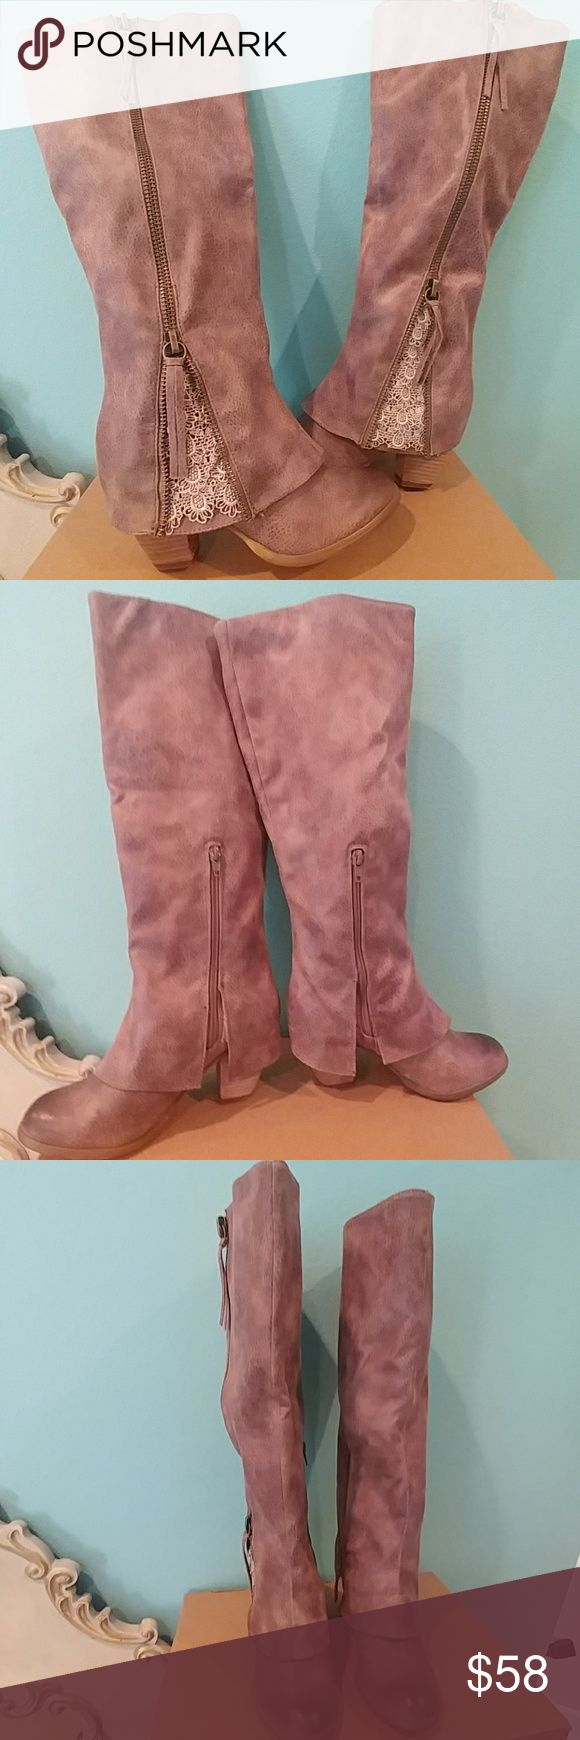 """🆕Not Rated Spiffy boots🆕 Brand new never worn. Taupe boots, Man-made upper & lining, side side closure, round toe, lace detailing, light padded footbed, stacked heel, synthetic sole. Heel: 3 """" Shaft: 16"""" Not Rated Shoes Heeled Boots"""